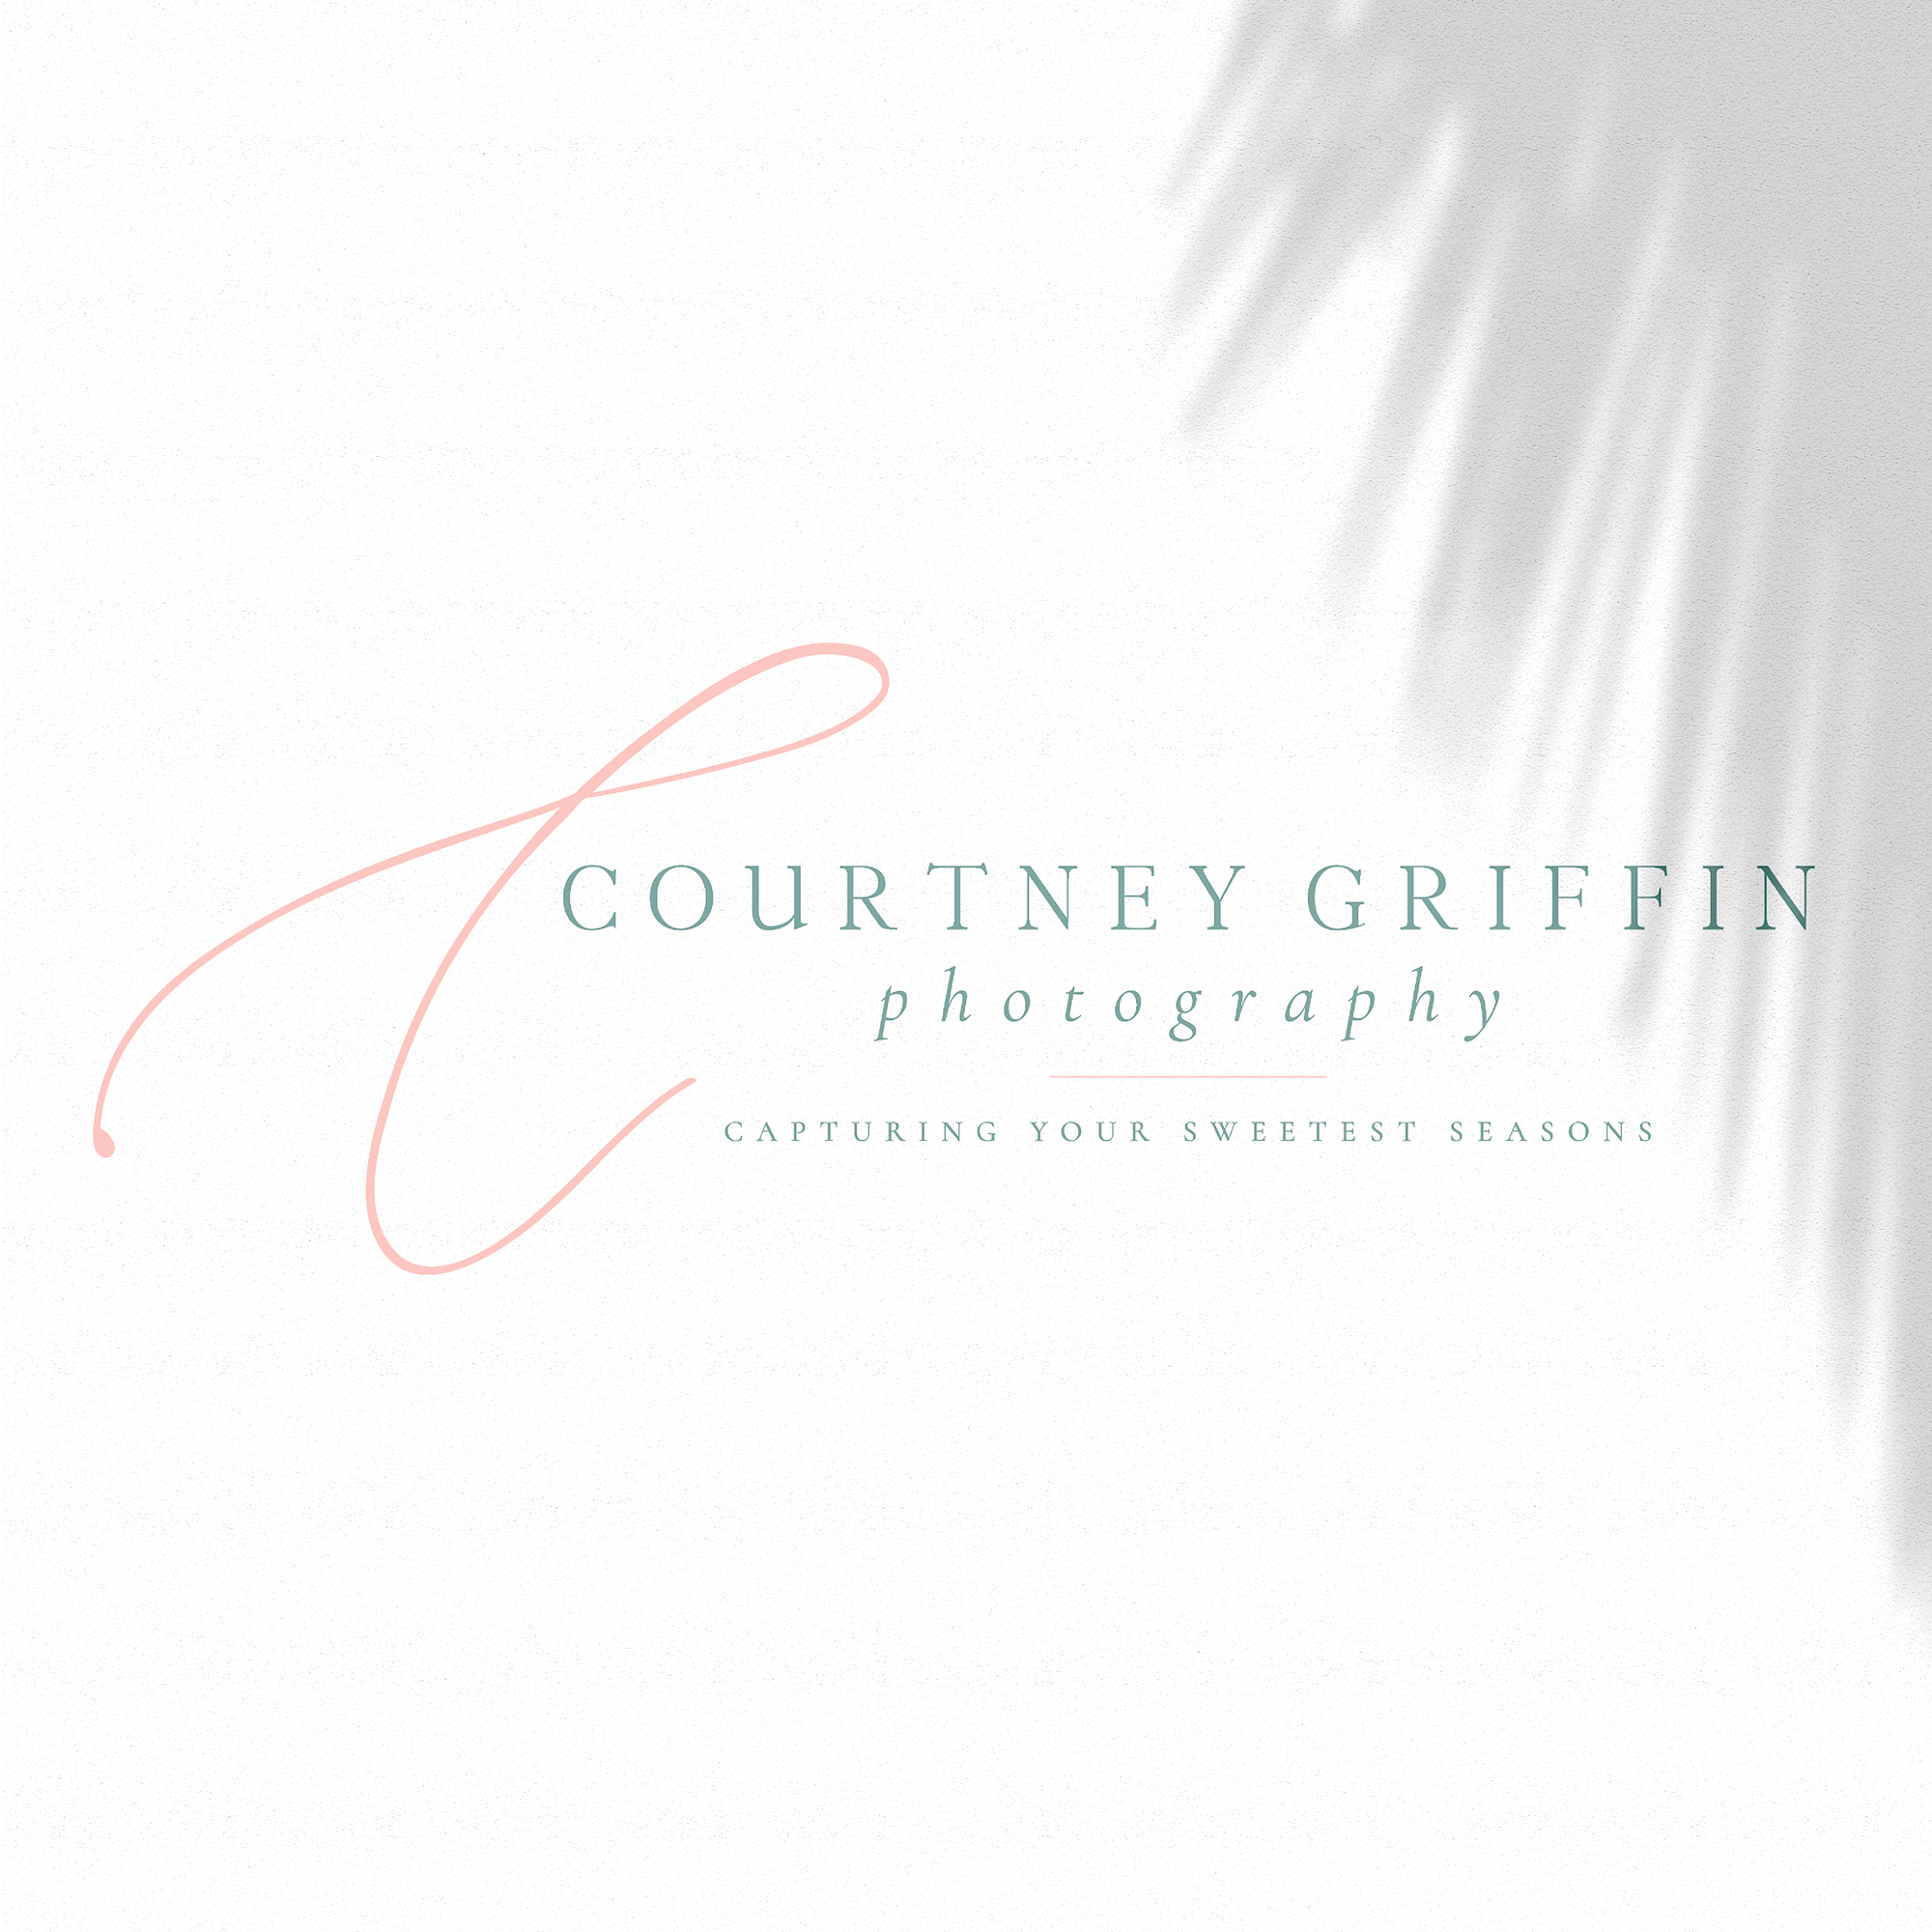 Courtney Griffin Photography Houston Lifestyle Family and Newborn Photographer brand and logo development by Kindly by Kelsea